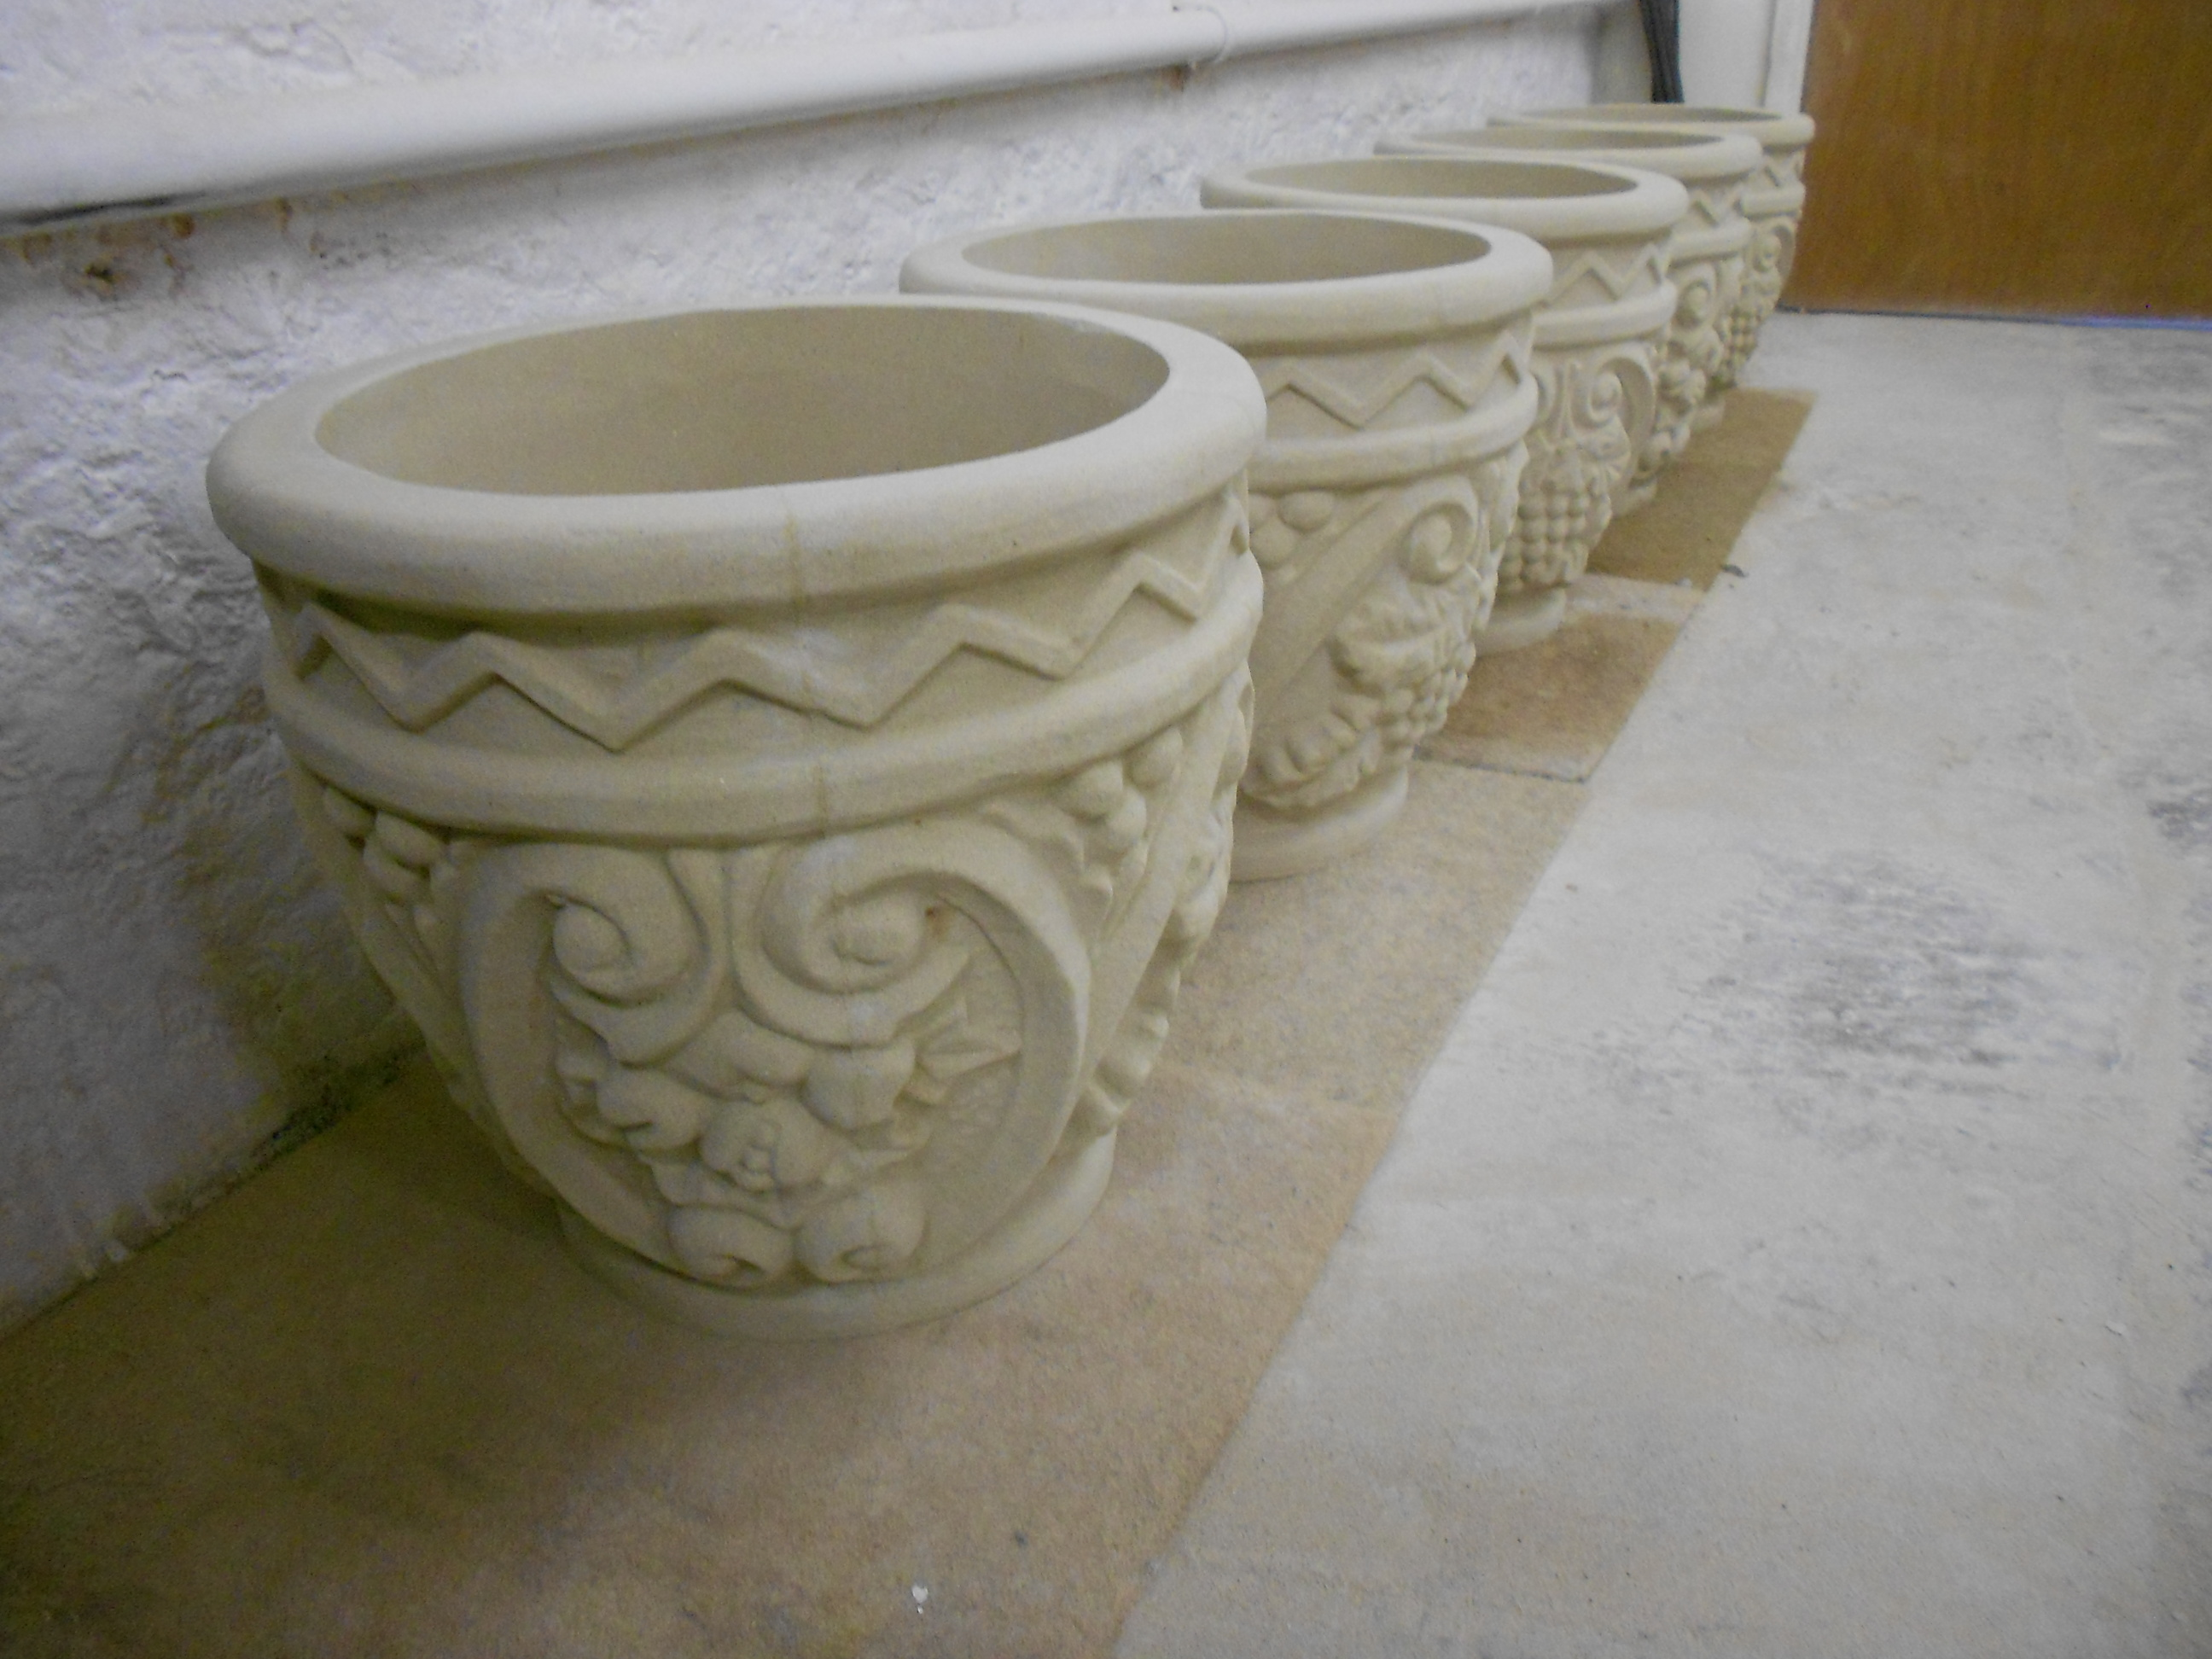 ... Garden Planters; Terracotta Planters, Oak Barrel Planters, Lead Planters  And More Recently Glazed Plant Pots. A Lot Of These Products Have Been  Around ...